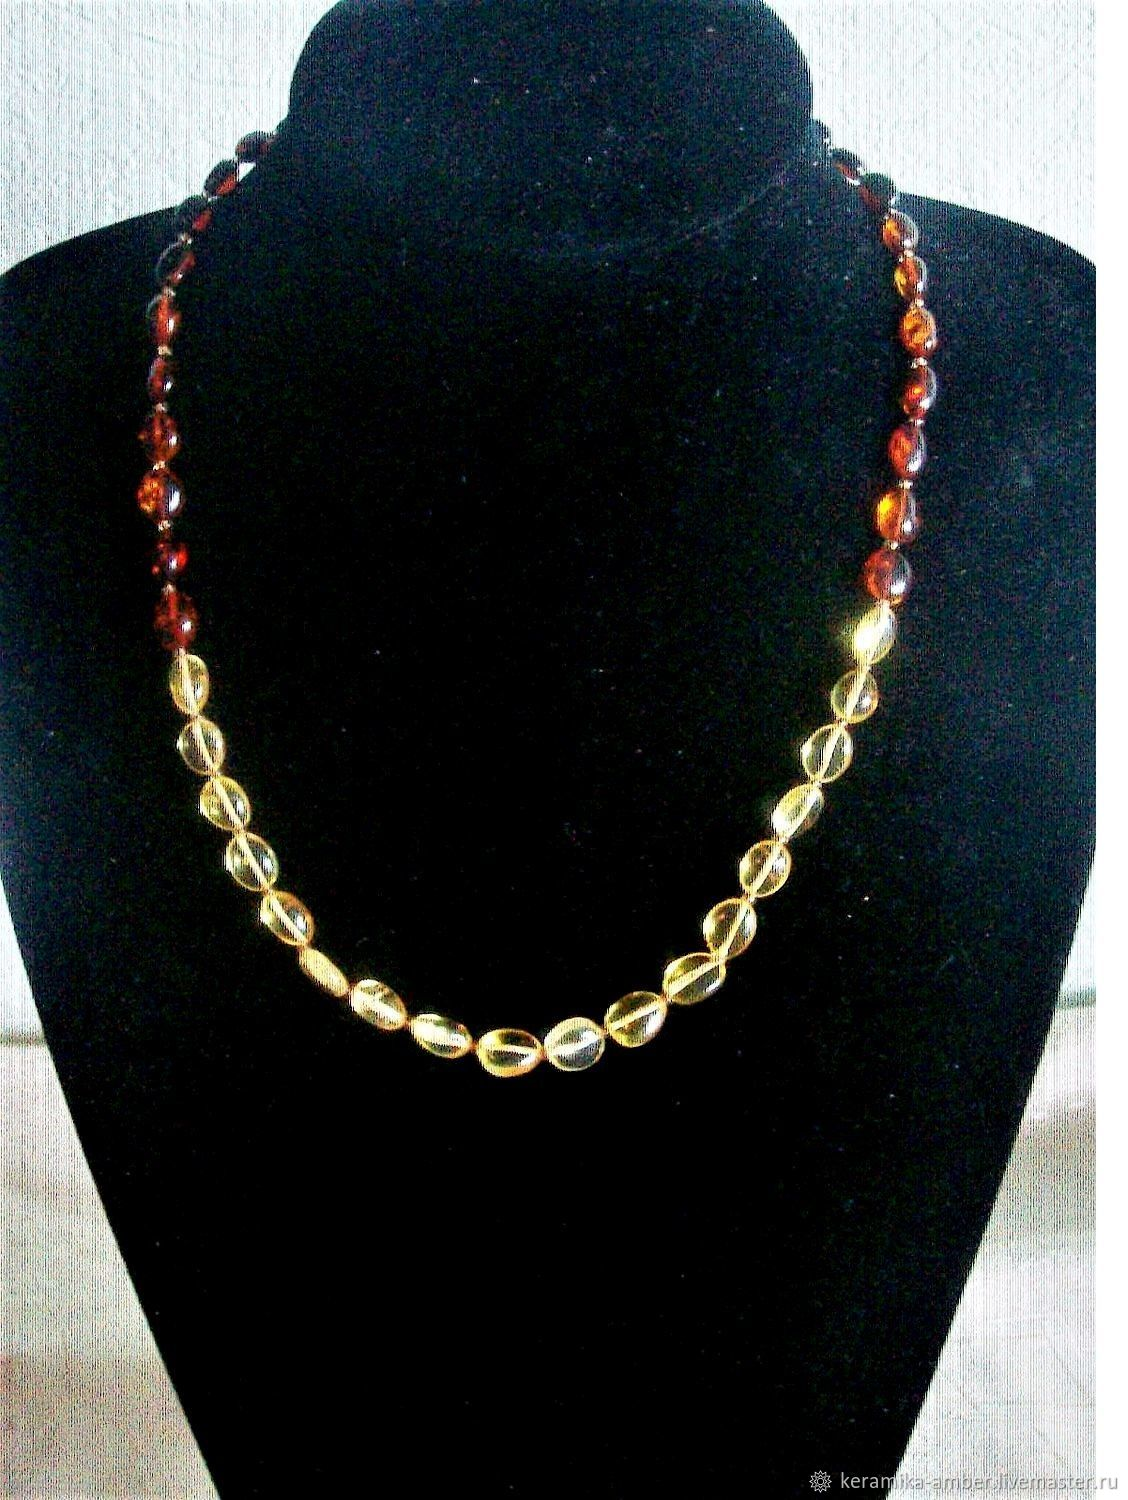 Amber beads amber natural stone jewelry for women, Necklace, Kaliningrad,  Фото №1